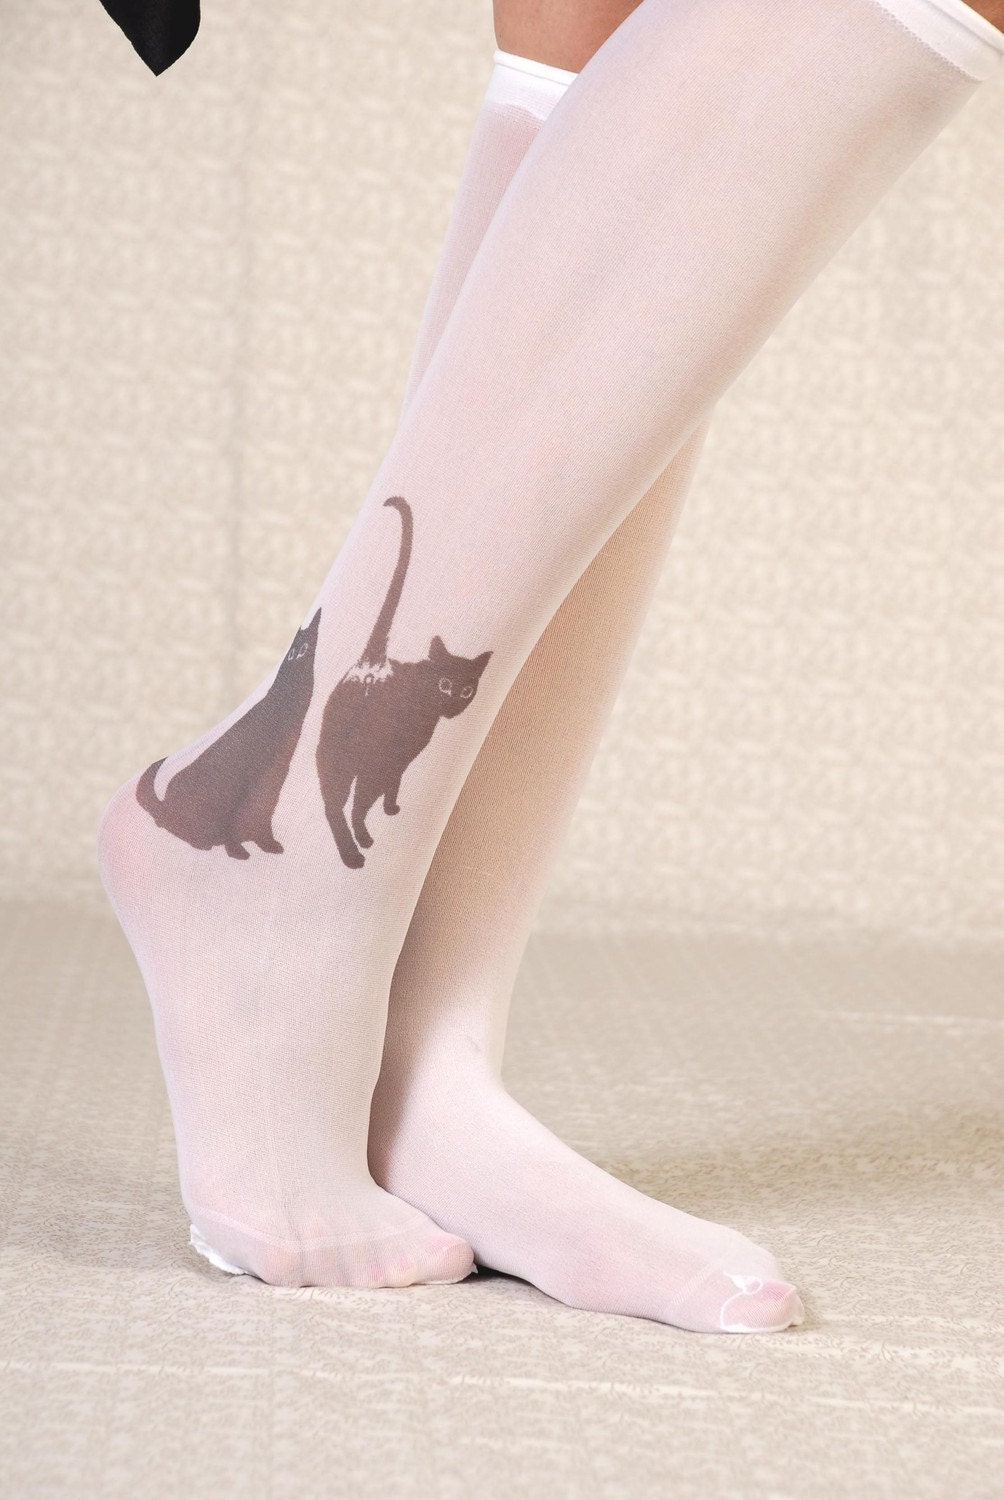 Printed Tights - white cats